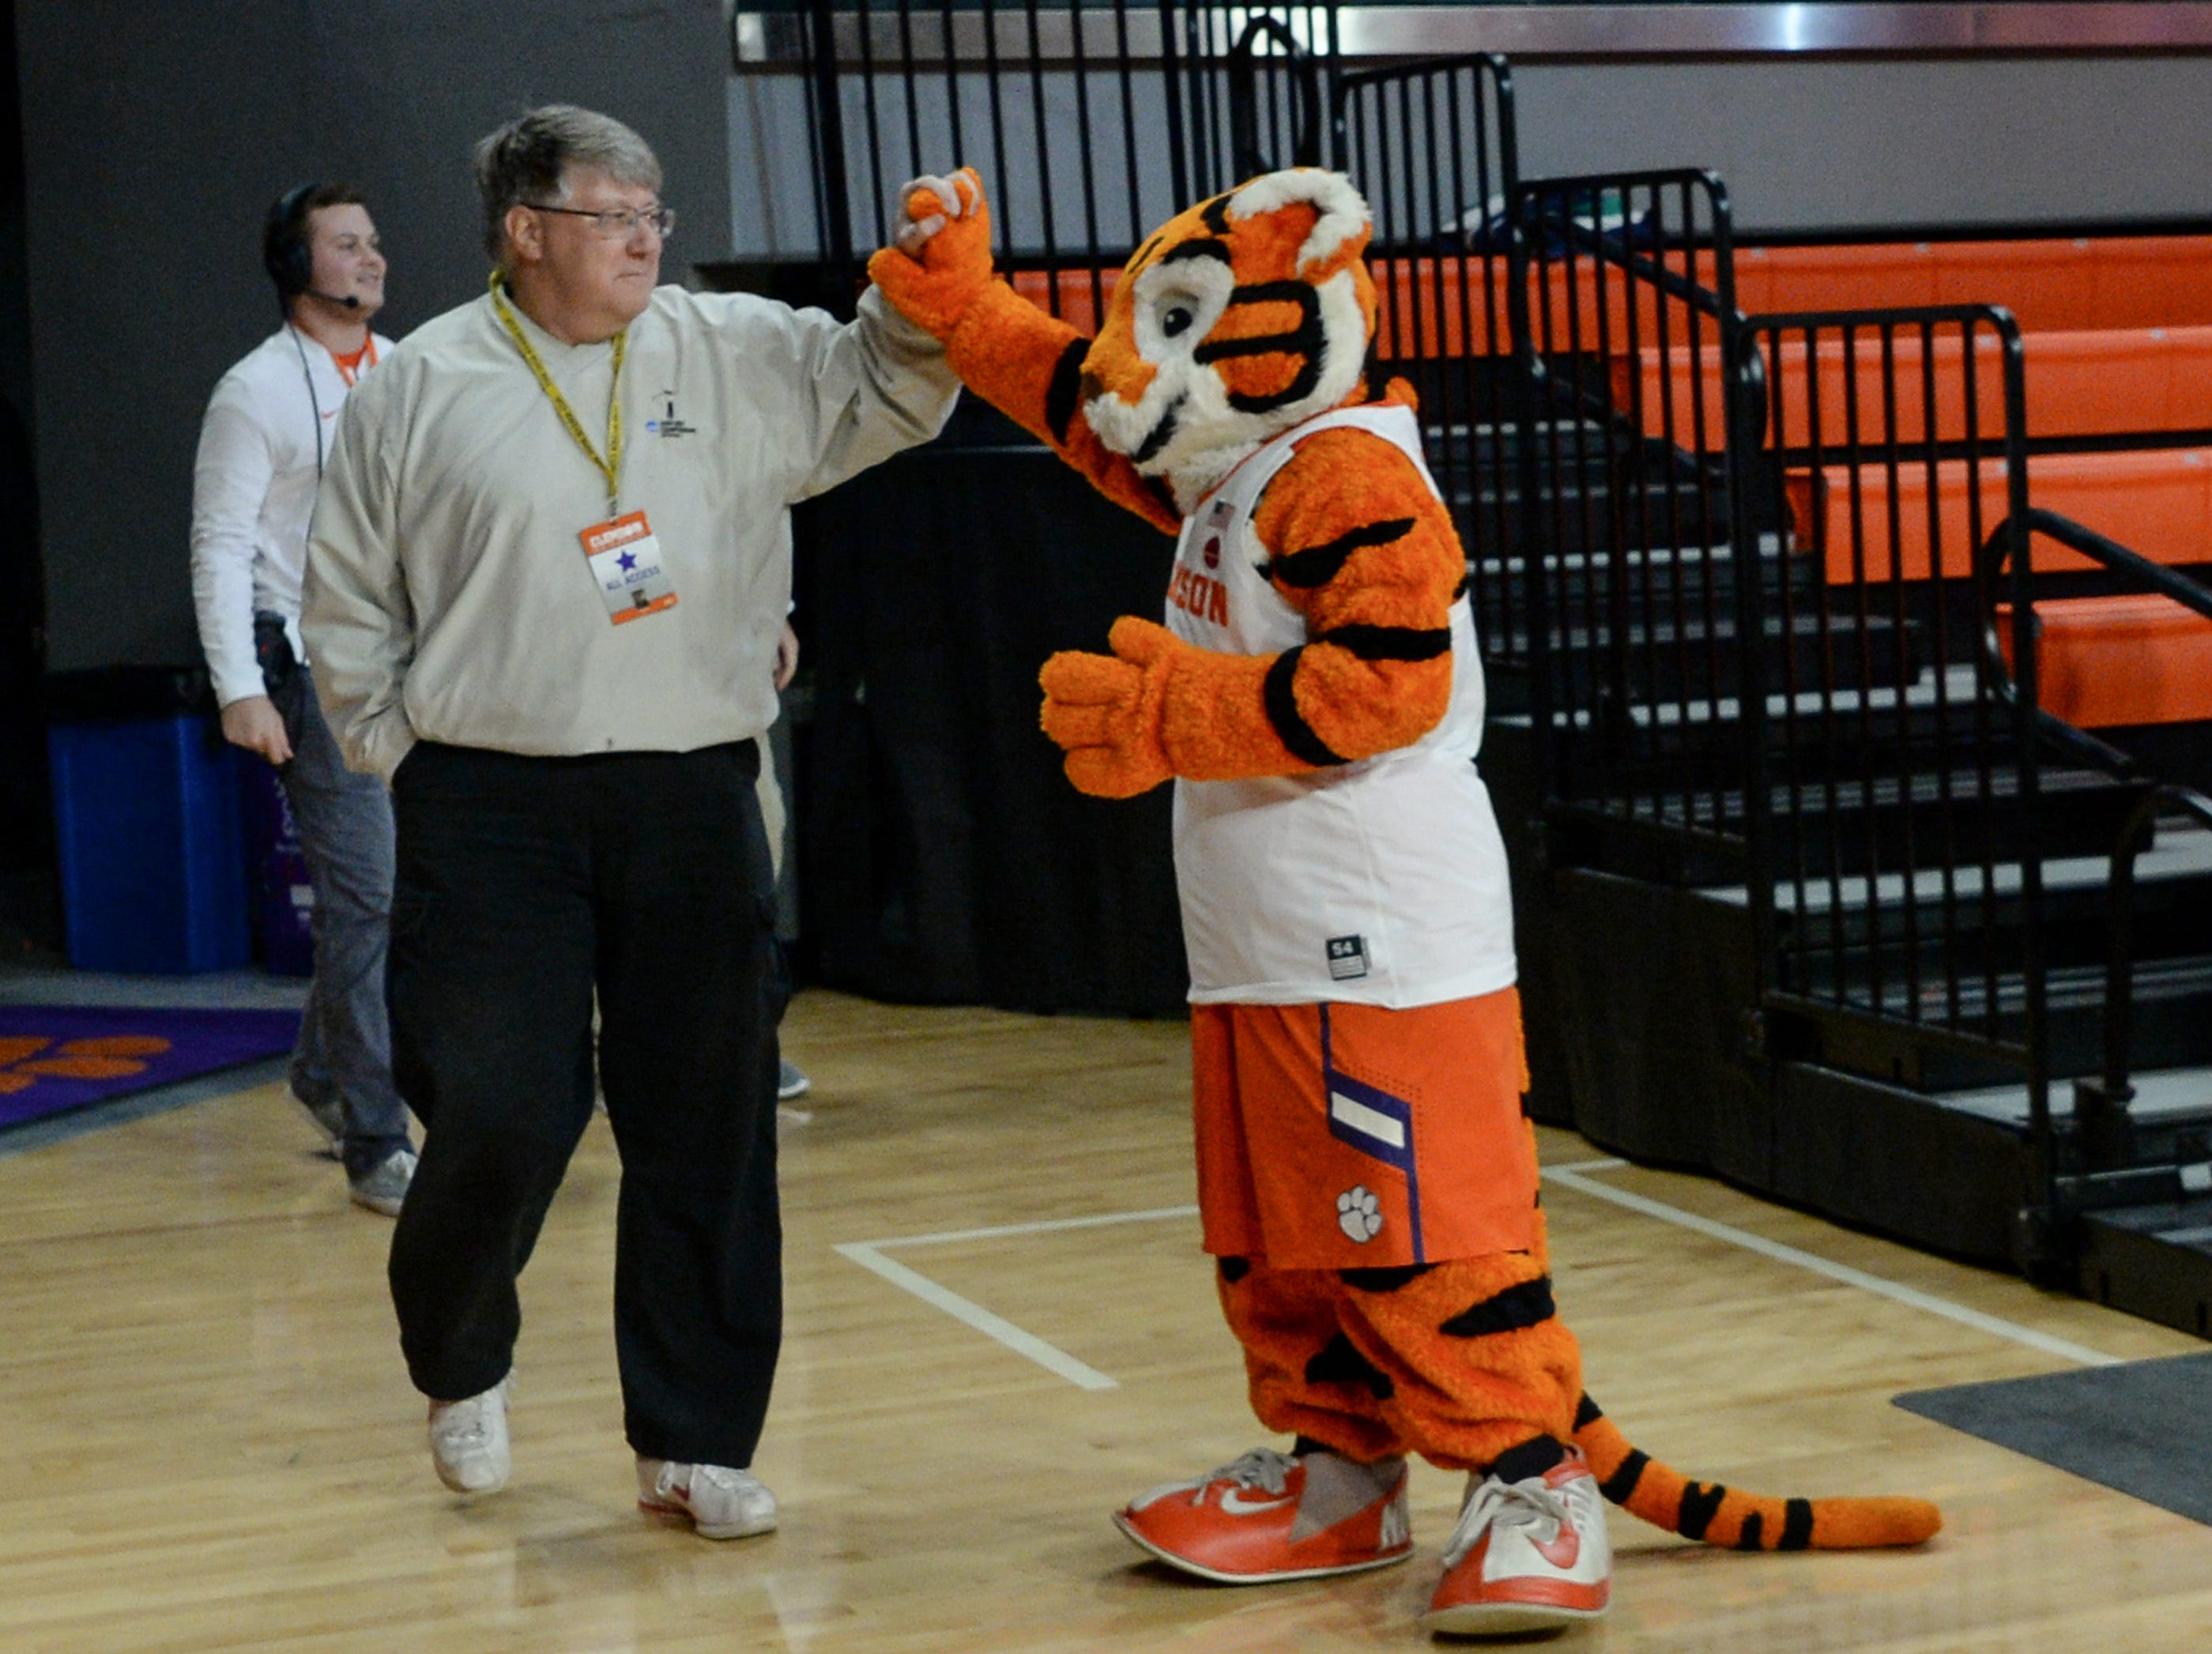 Tim Bourret exchanges high-five with the Tiger Cub before the first half of the Clemson and Georgia Tech women's game at Littlejohn Coliseum in Clemson Thursday, January 17, 2019. Clemson won 71-61.